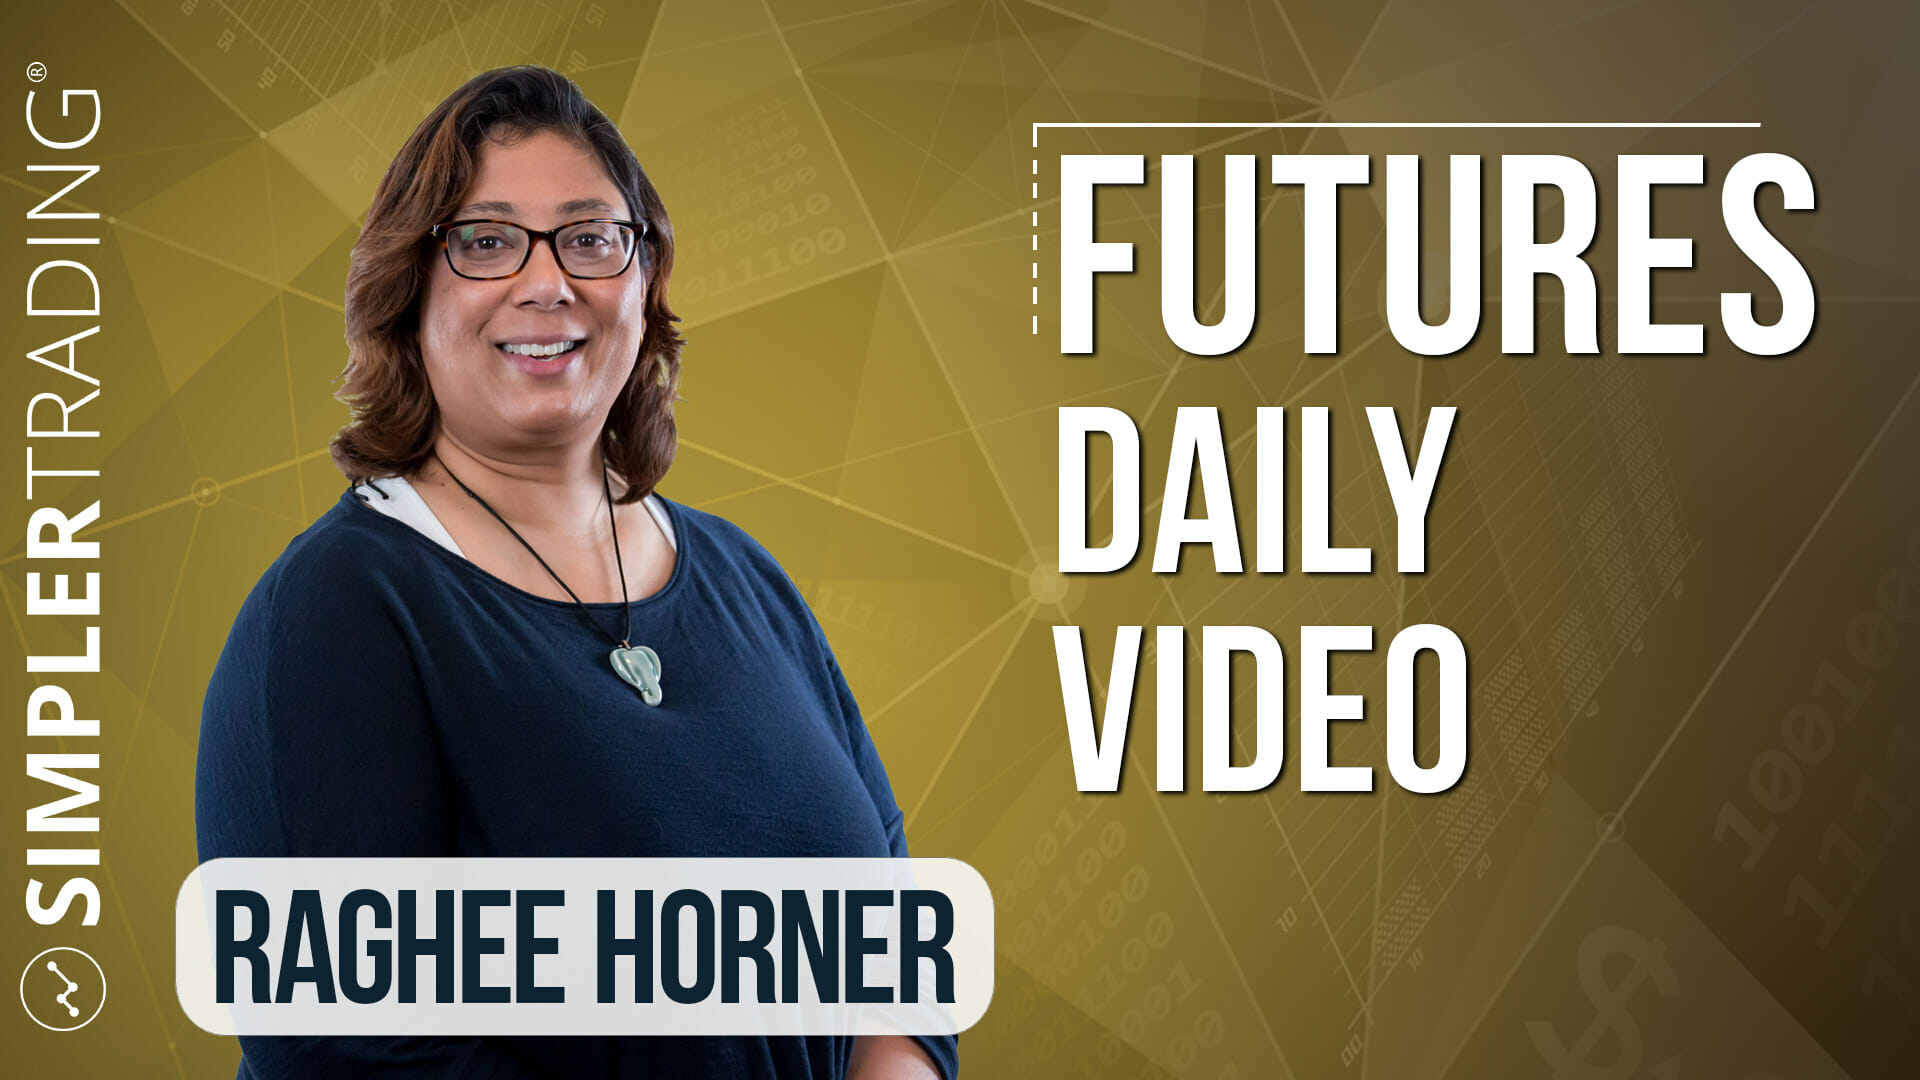 Raghee Horner free daily video